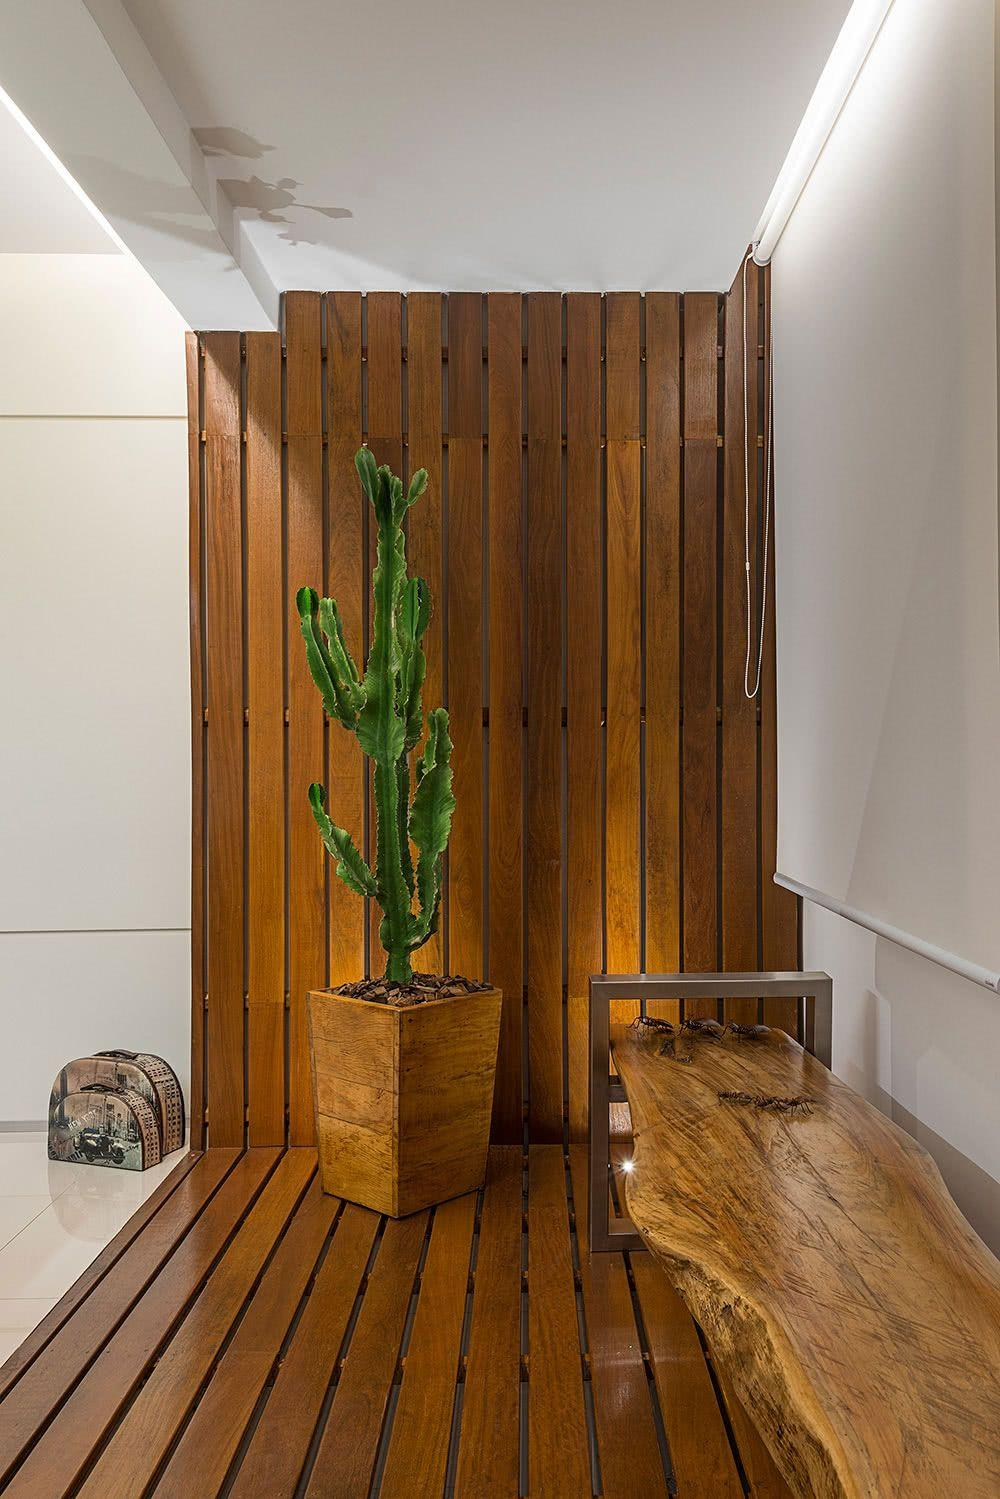 Cacti at home: 60 inspirations to decorate with the 43 plant